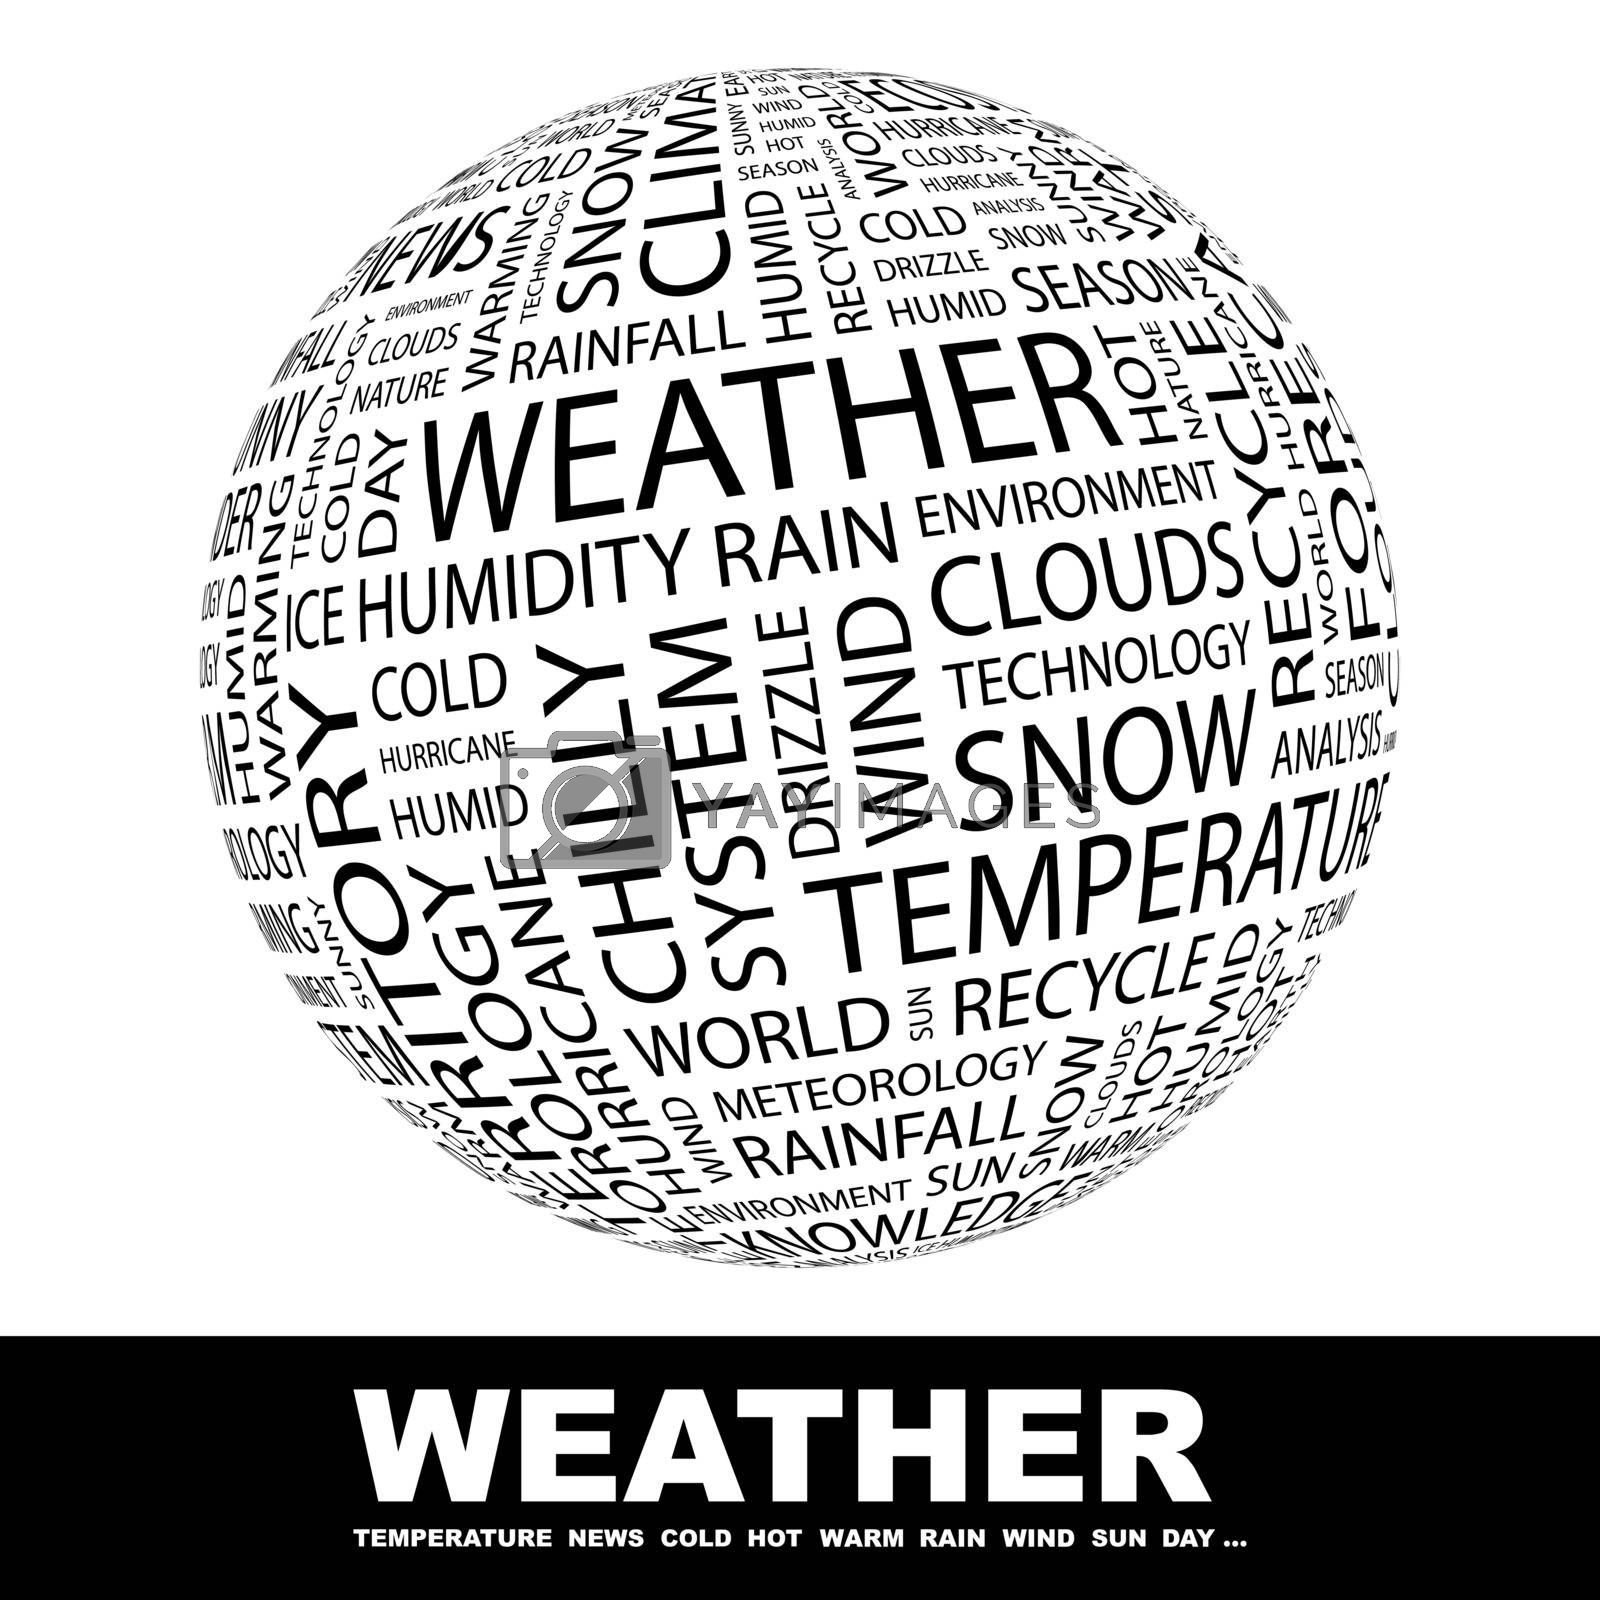 WEATHER. Concept illustration. Graphic tag collection. Wordcloud collage.